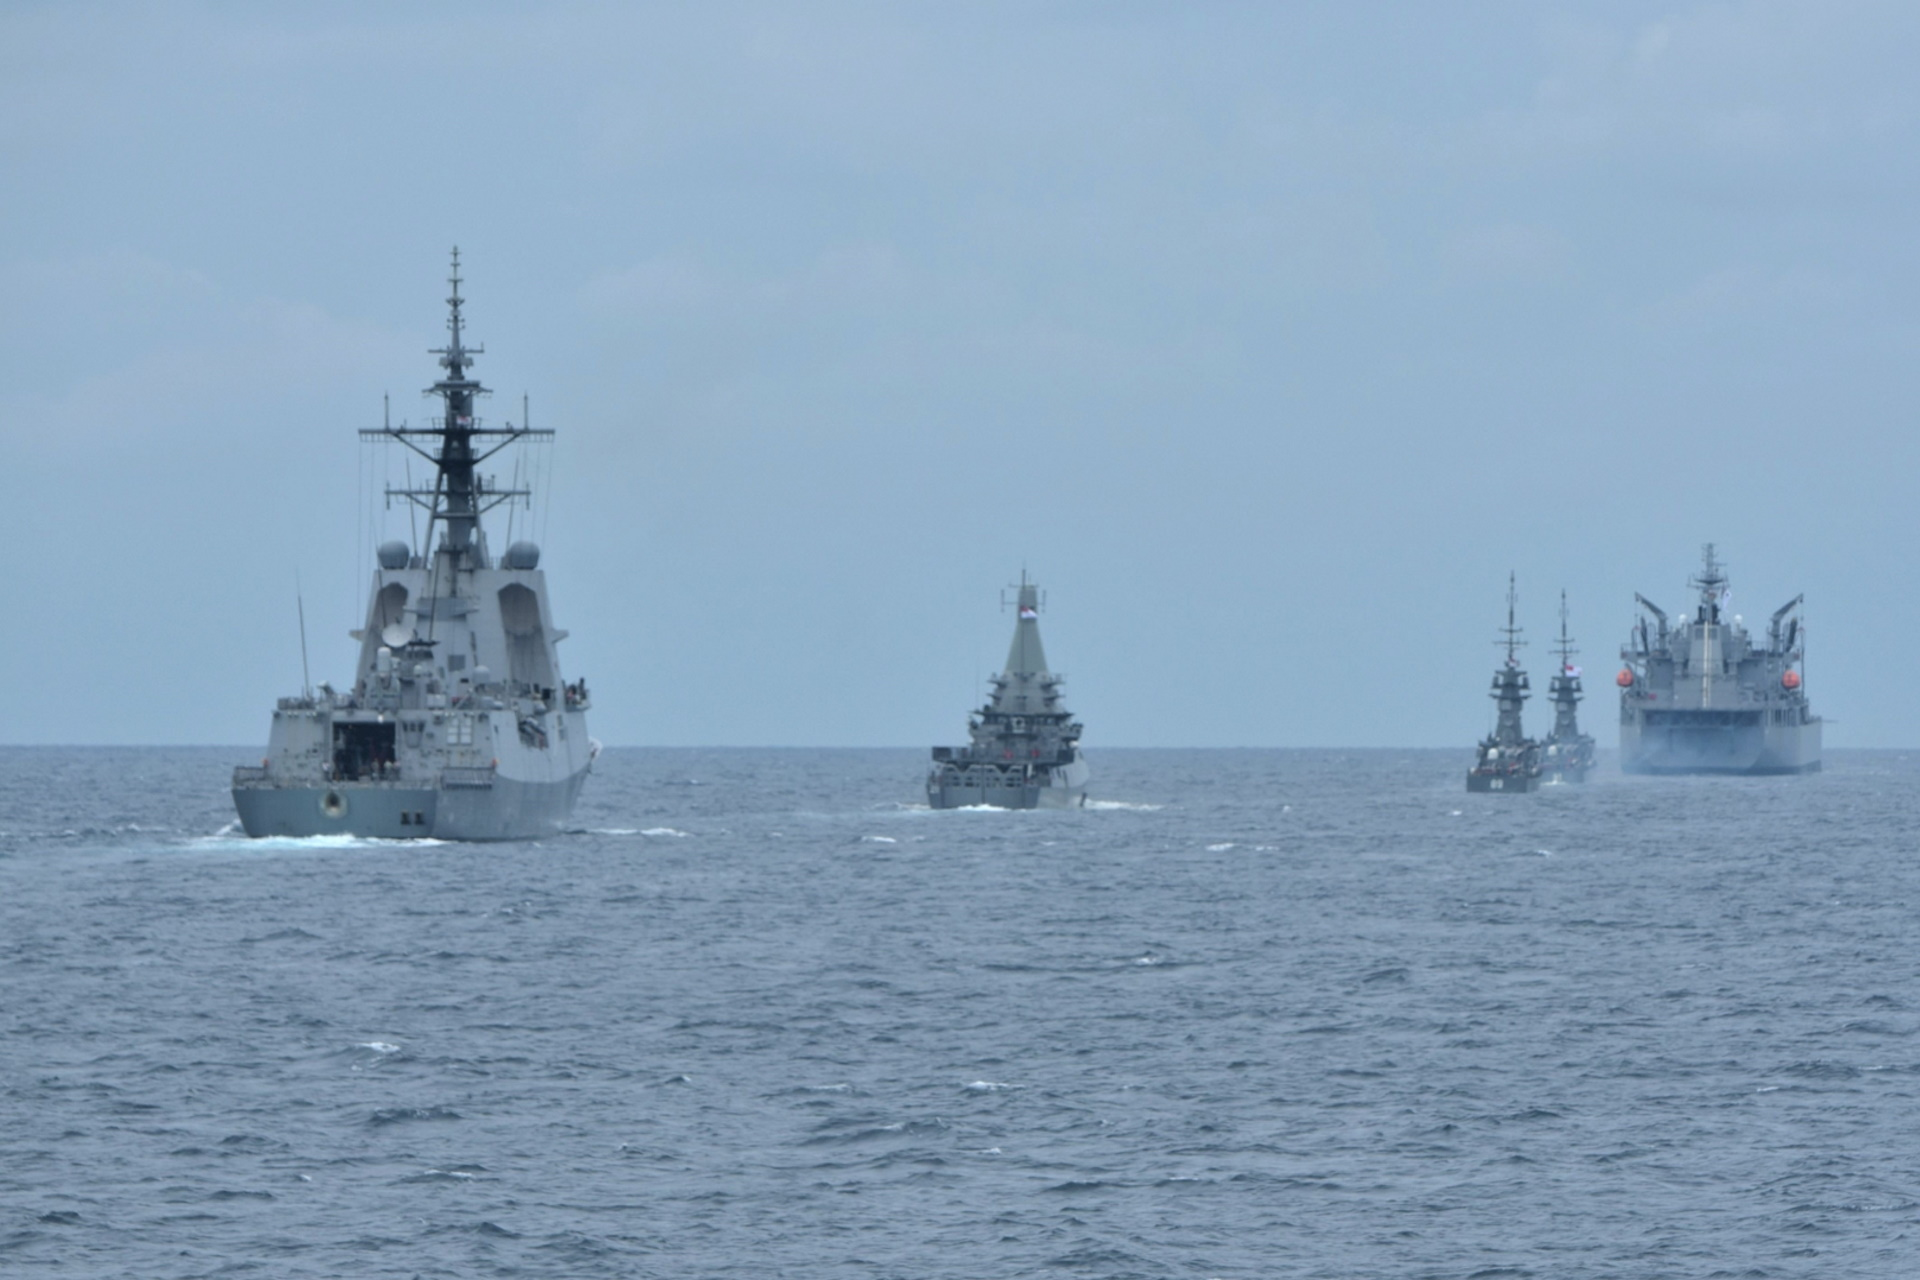 The Republic of Singapore Navy (RSN)'s littoral mission vessel RSS Dauntless (second from left) and missile corvettes RSS Valour (middle), RSS Valiant (second from right) conducting a manoeuvring exercise with the Royal Australian Navy (RAN)'s destroyer HMAS Hobart (left) and oiler HMAS Sirius (right) during Exercise Singaroo.